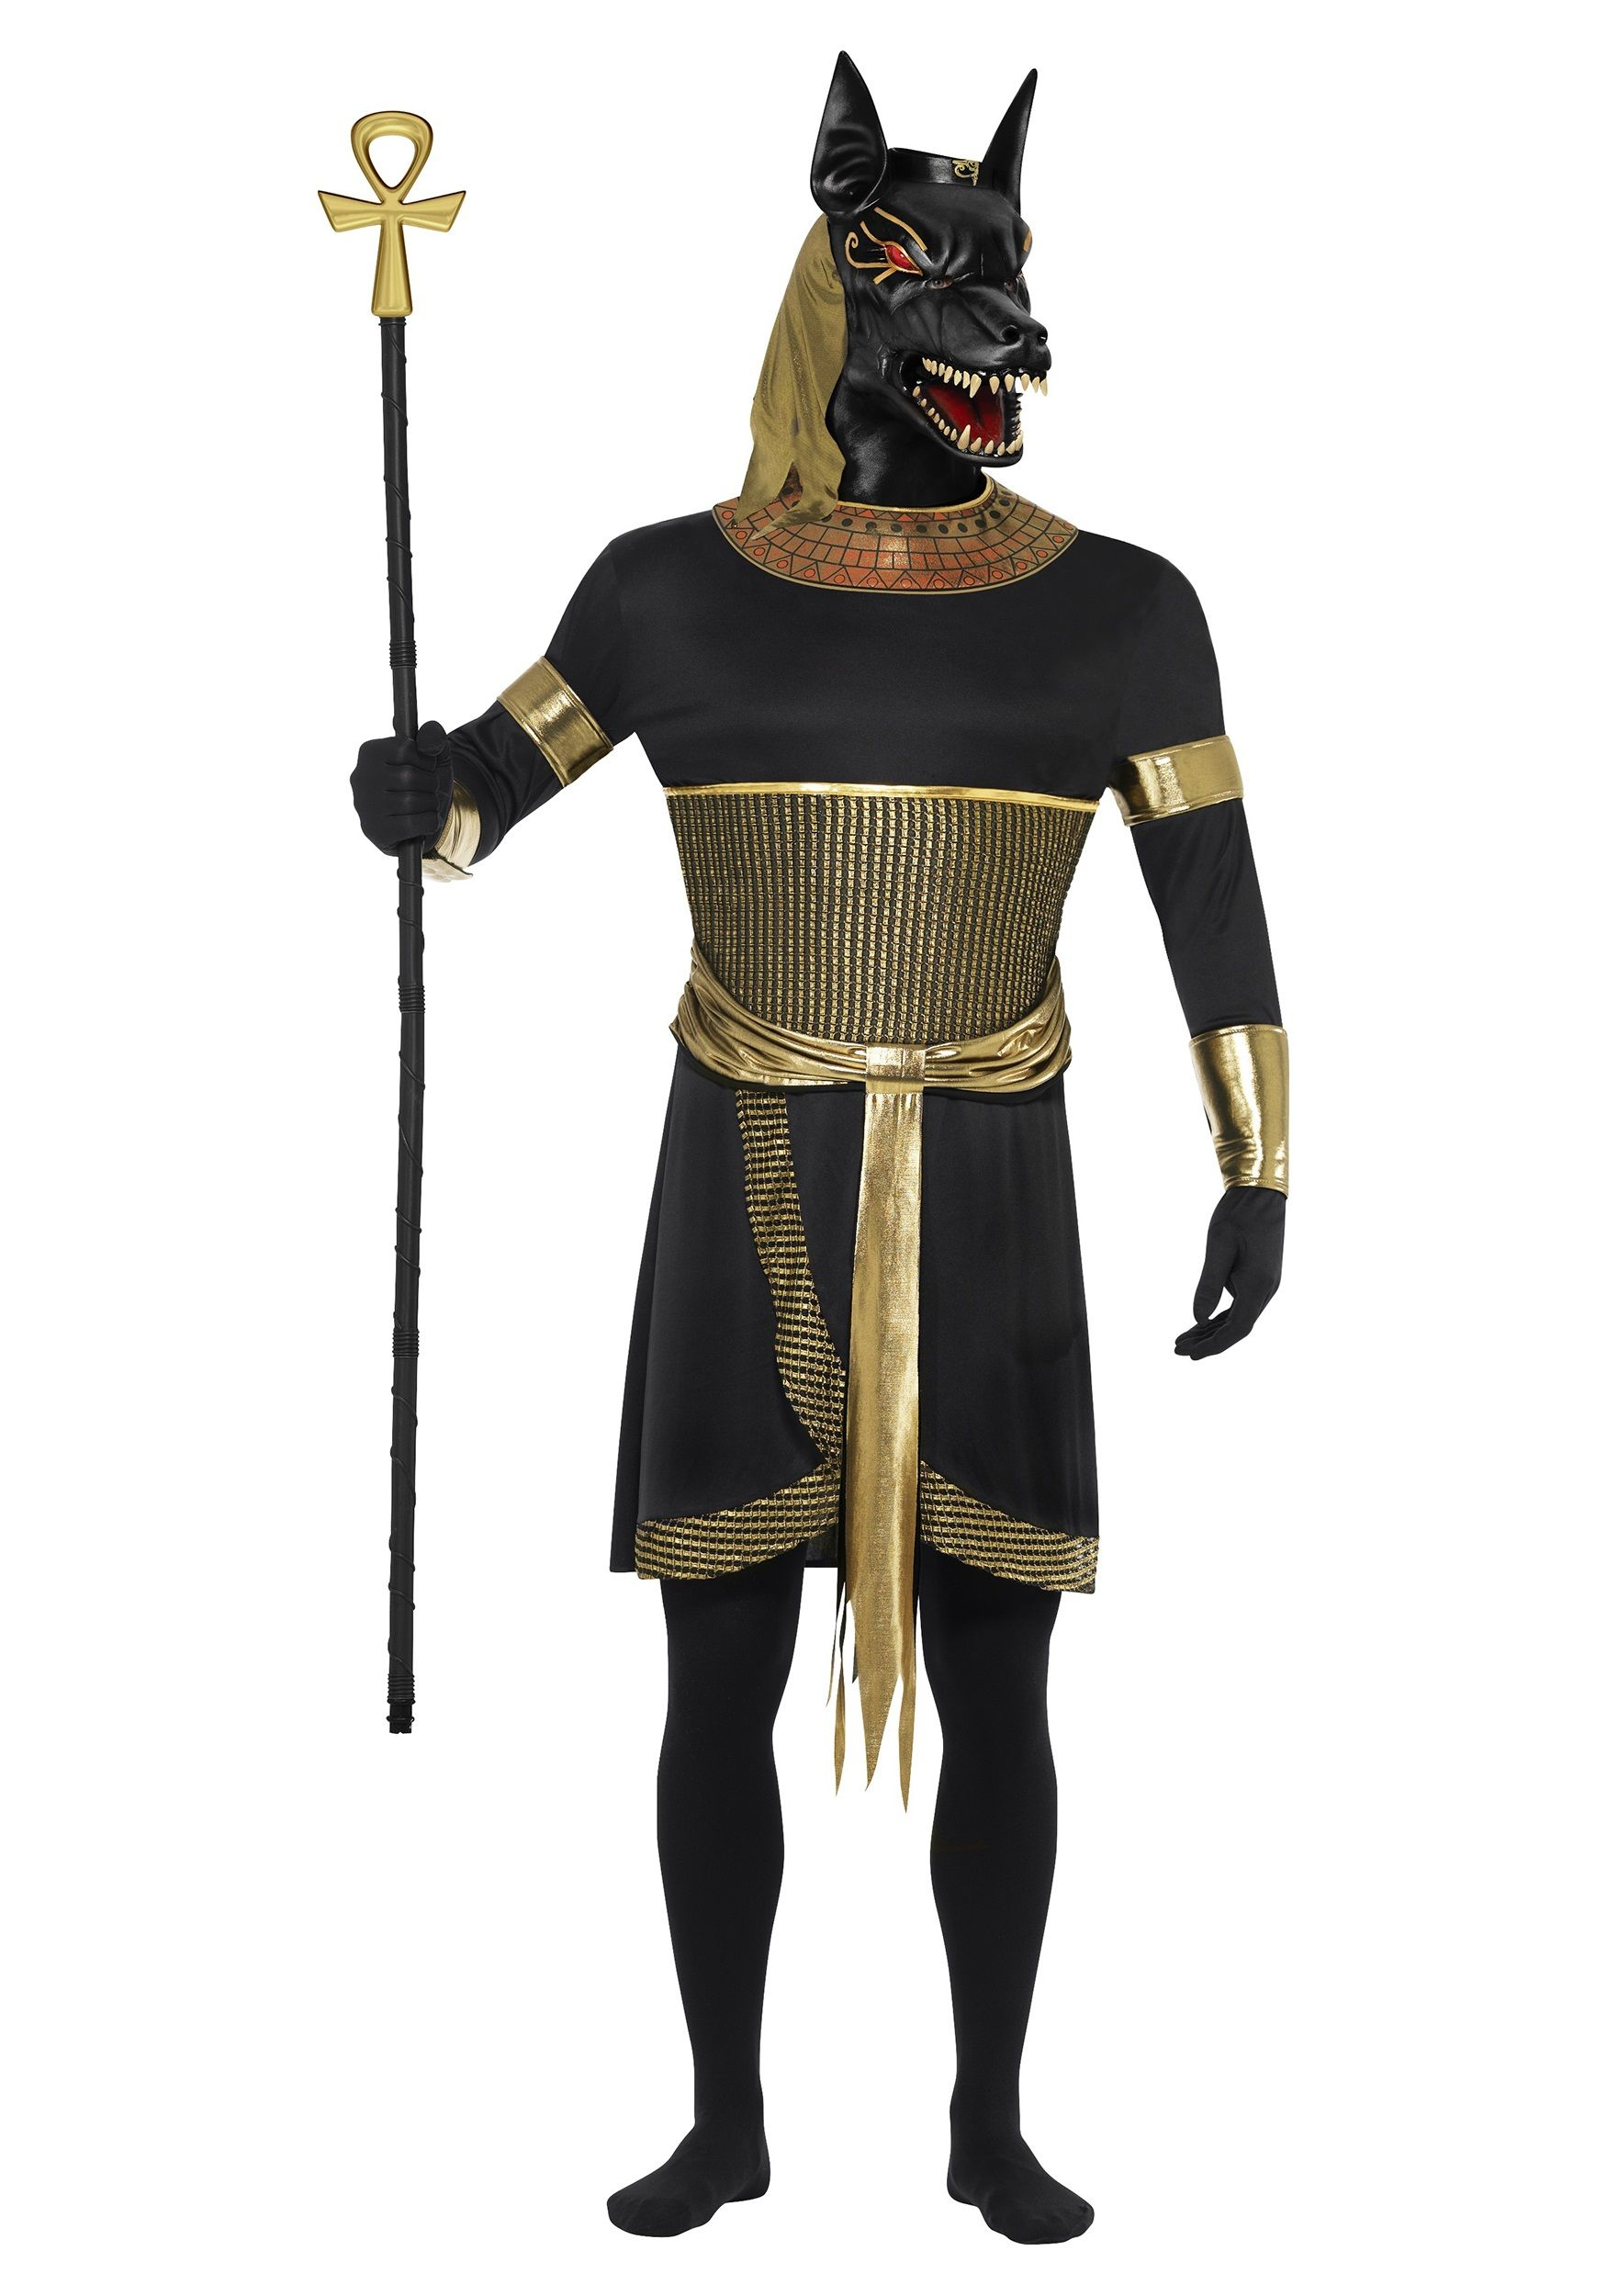 Men's Anubis the Jackal Costume | Costumes, Halloween costumes and ...